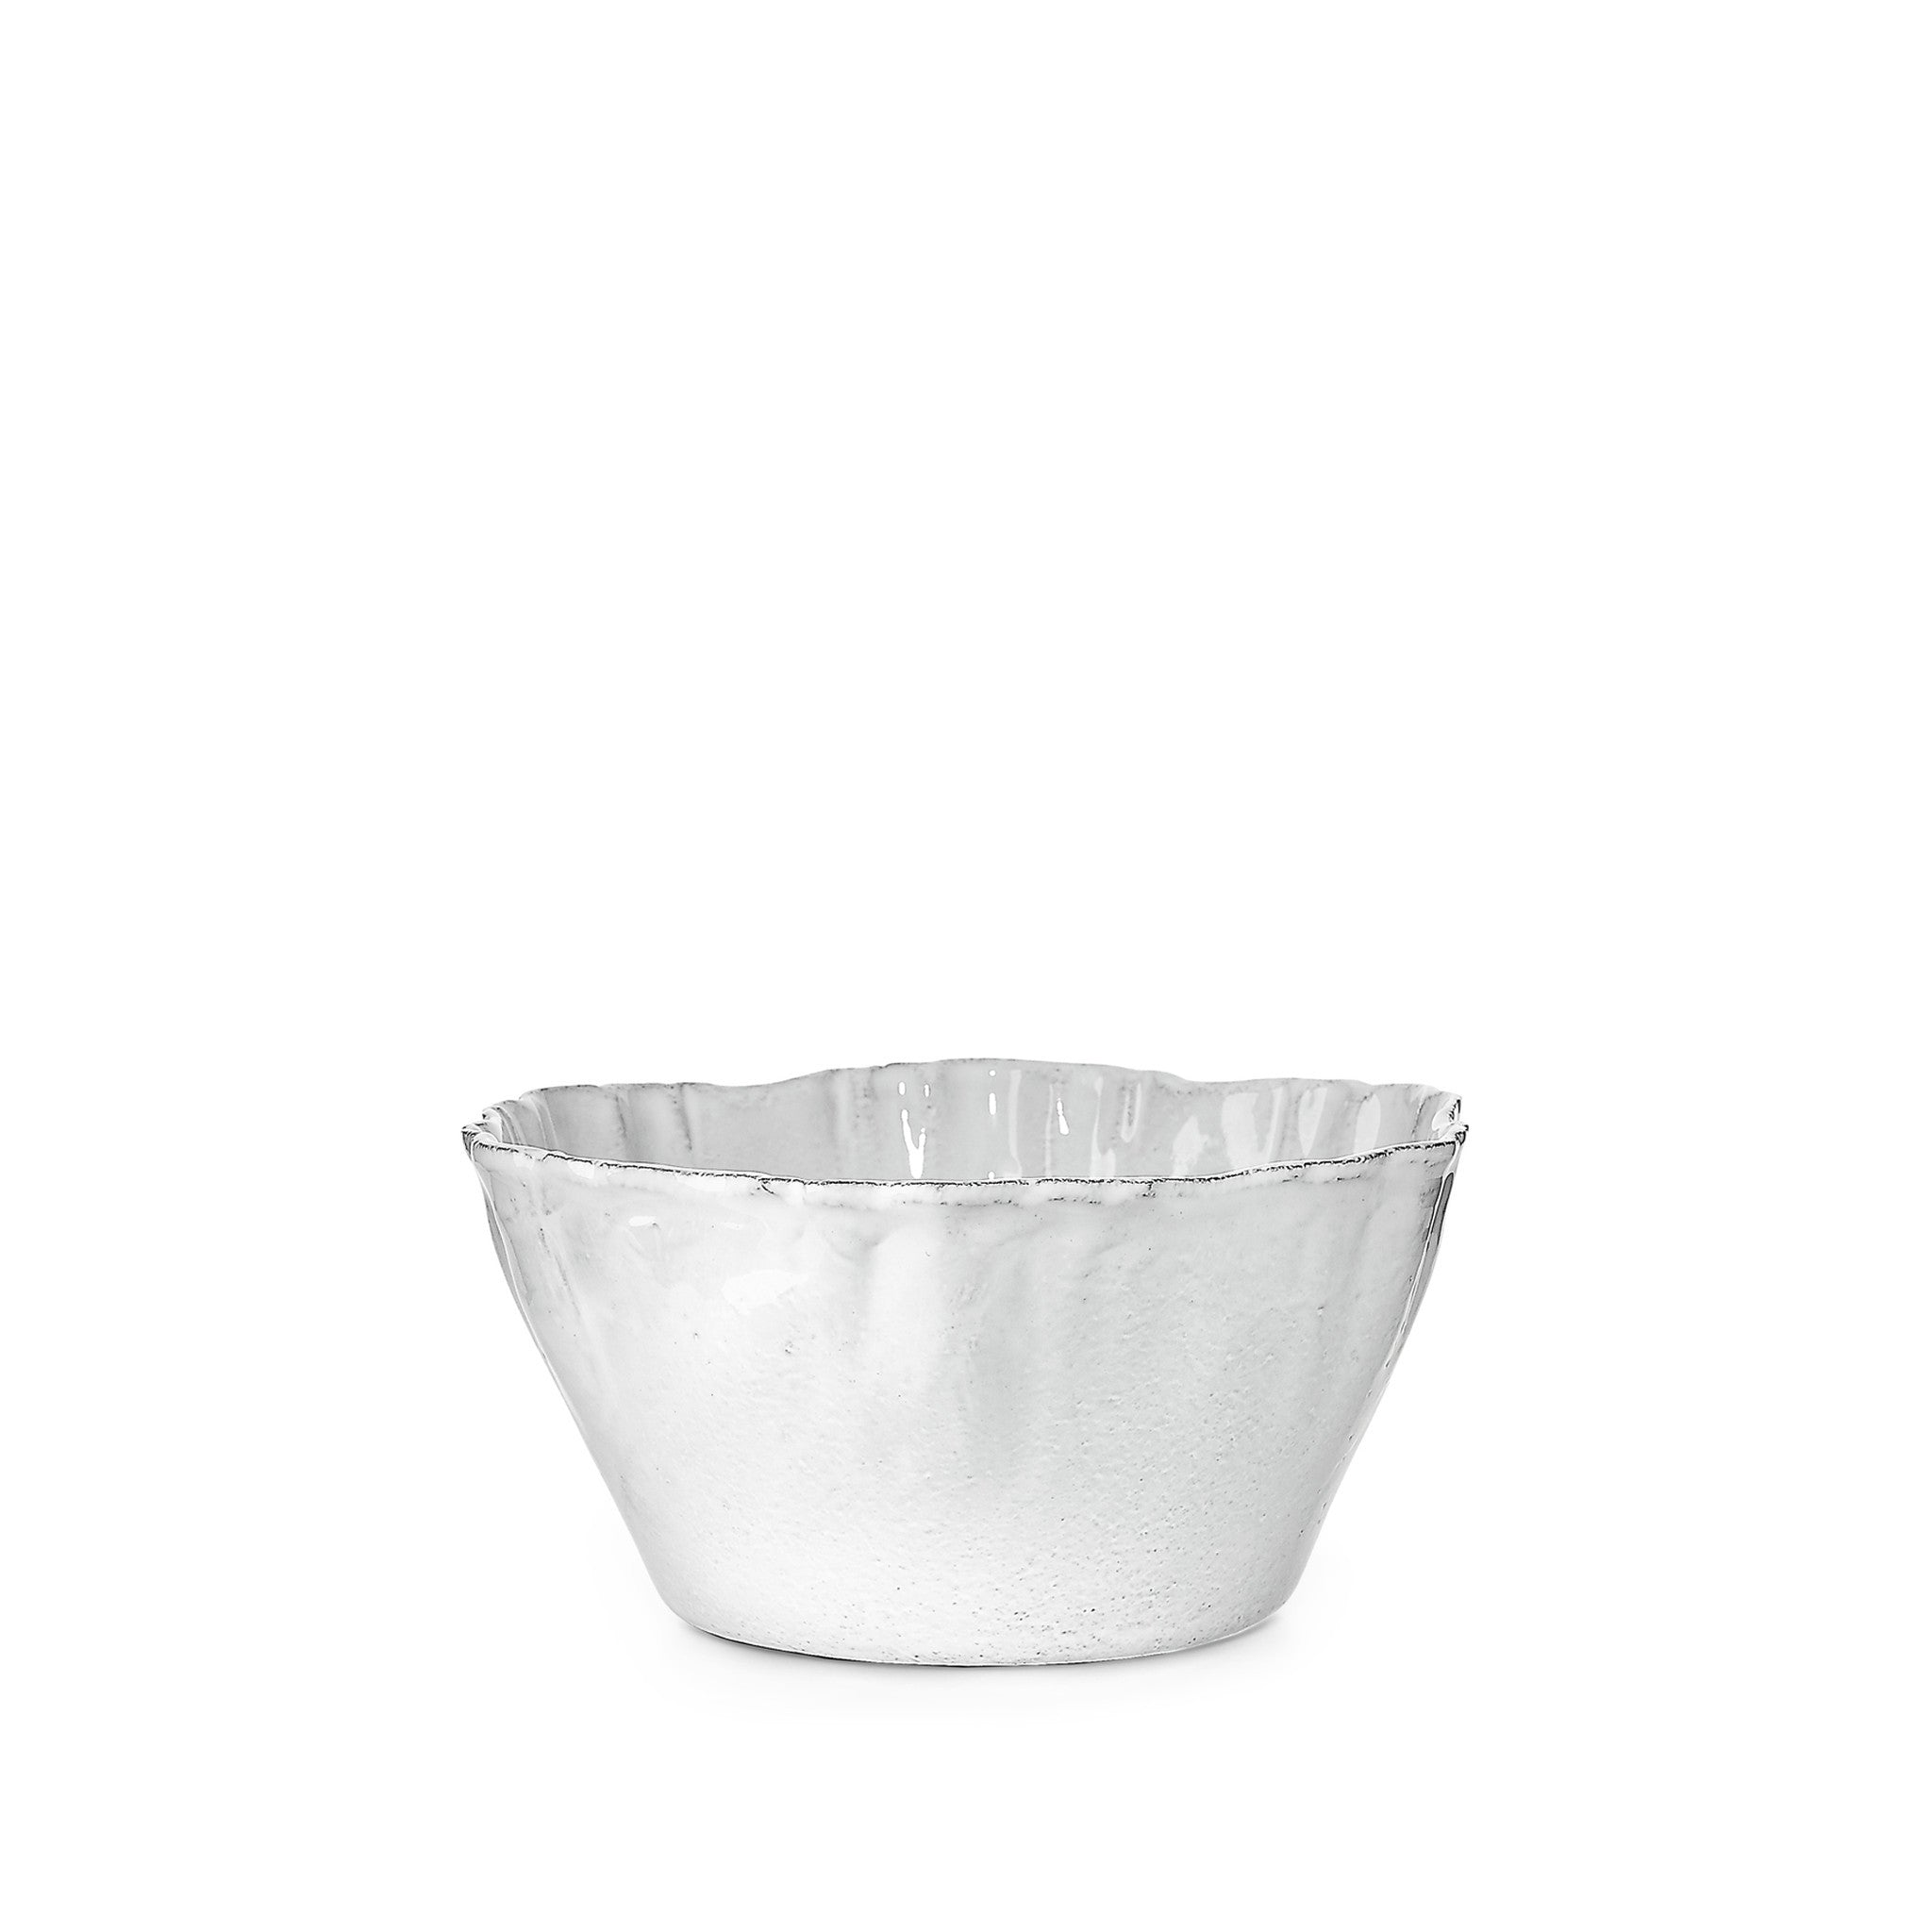 Victor Round Salad Bowl, Small by Astier de Villatte